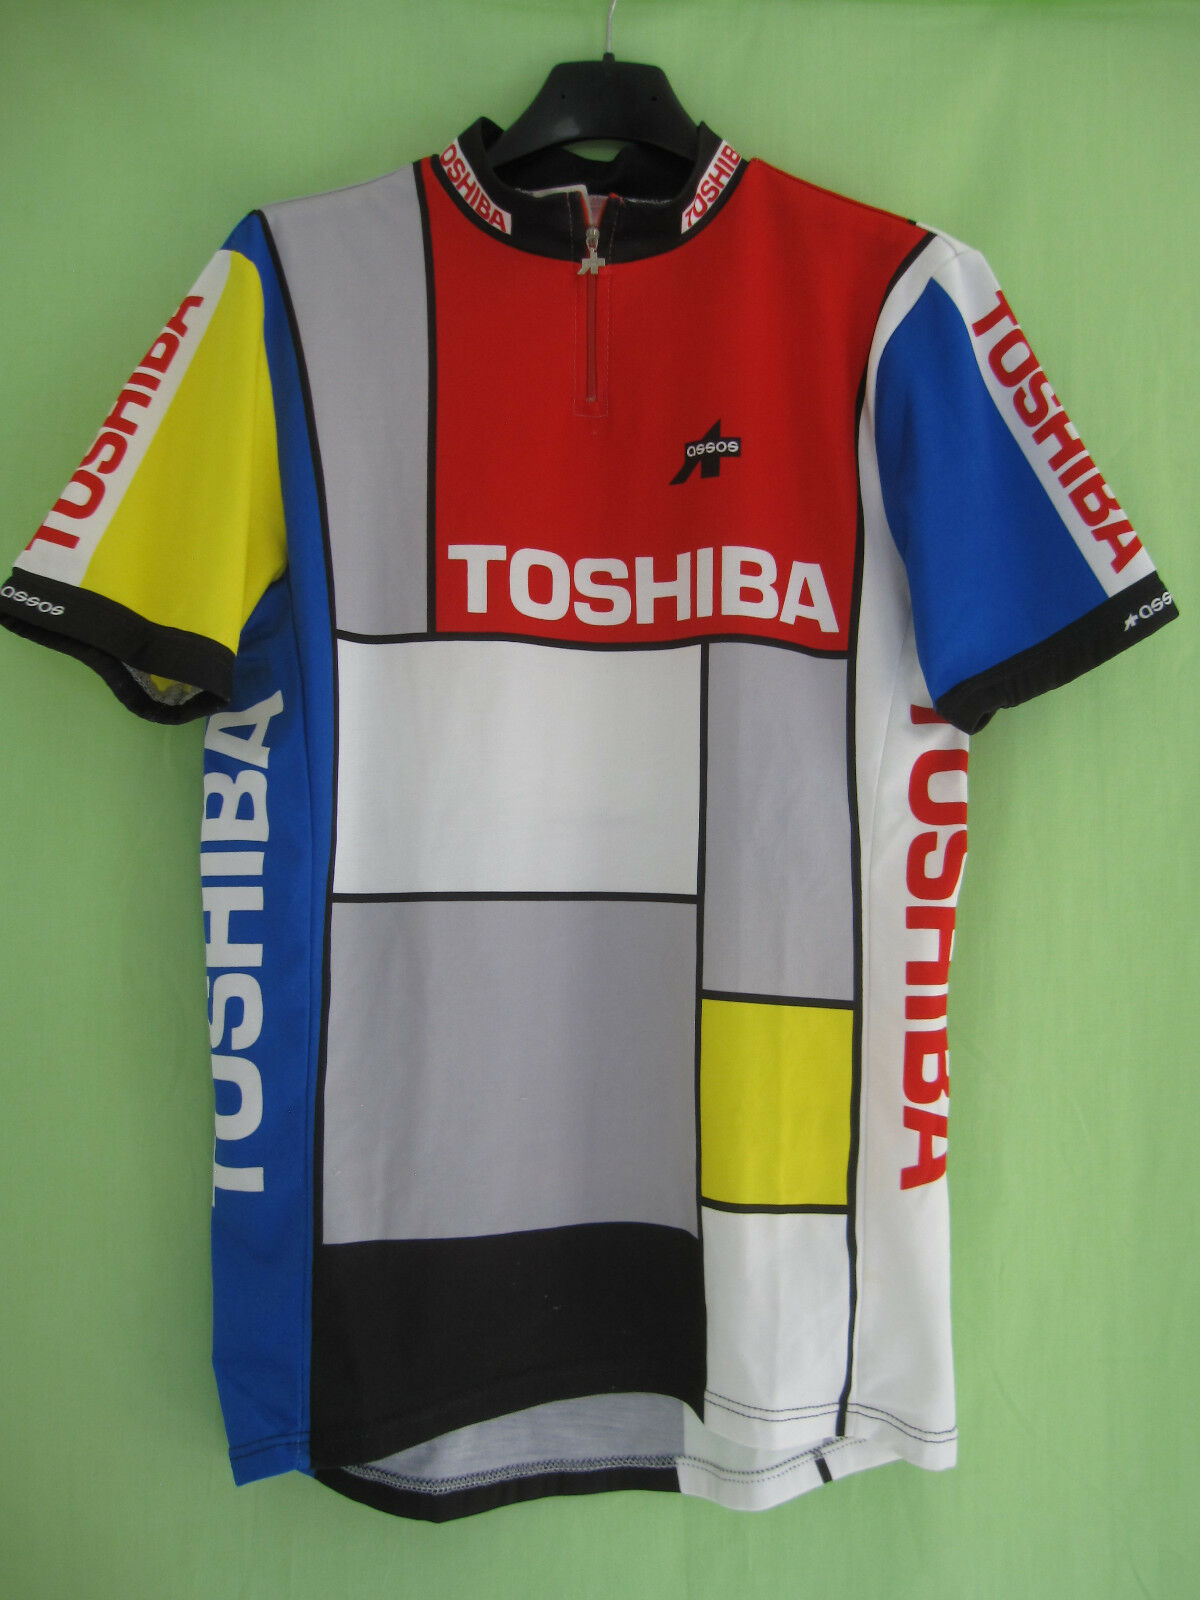 Maillot cycliste Toshiba Tour Pro 1989 ASSOS Vintage Jersey Cycling - XL